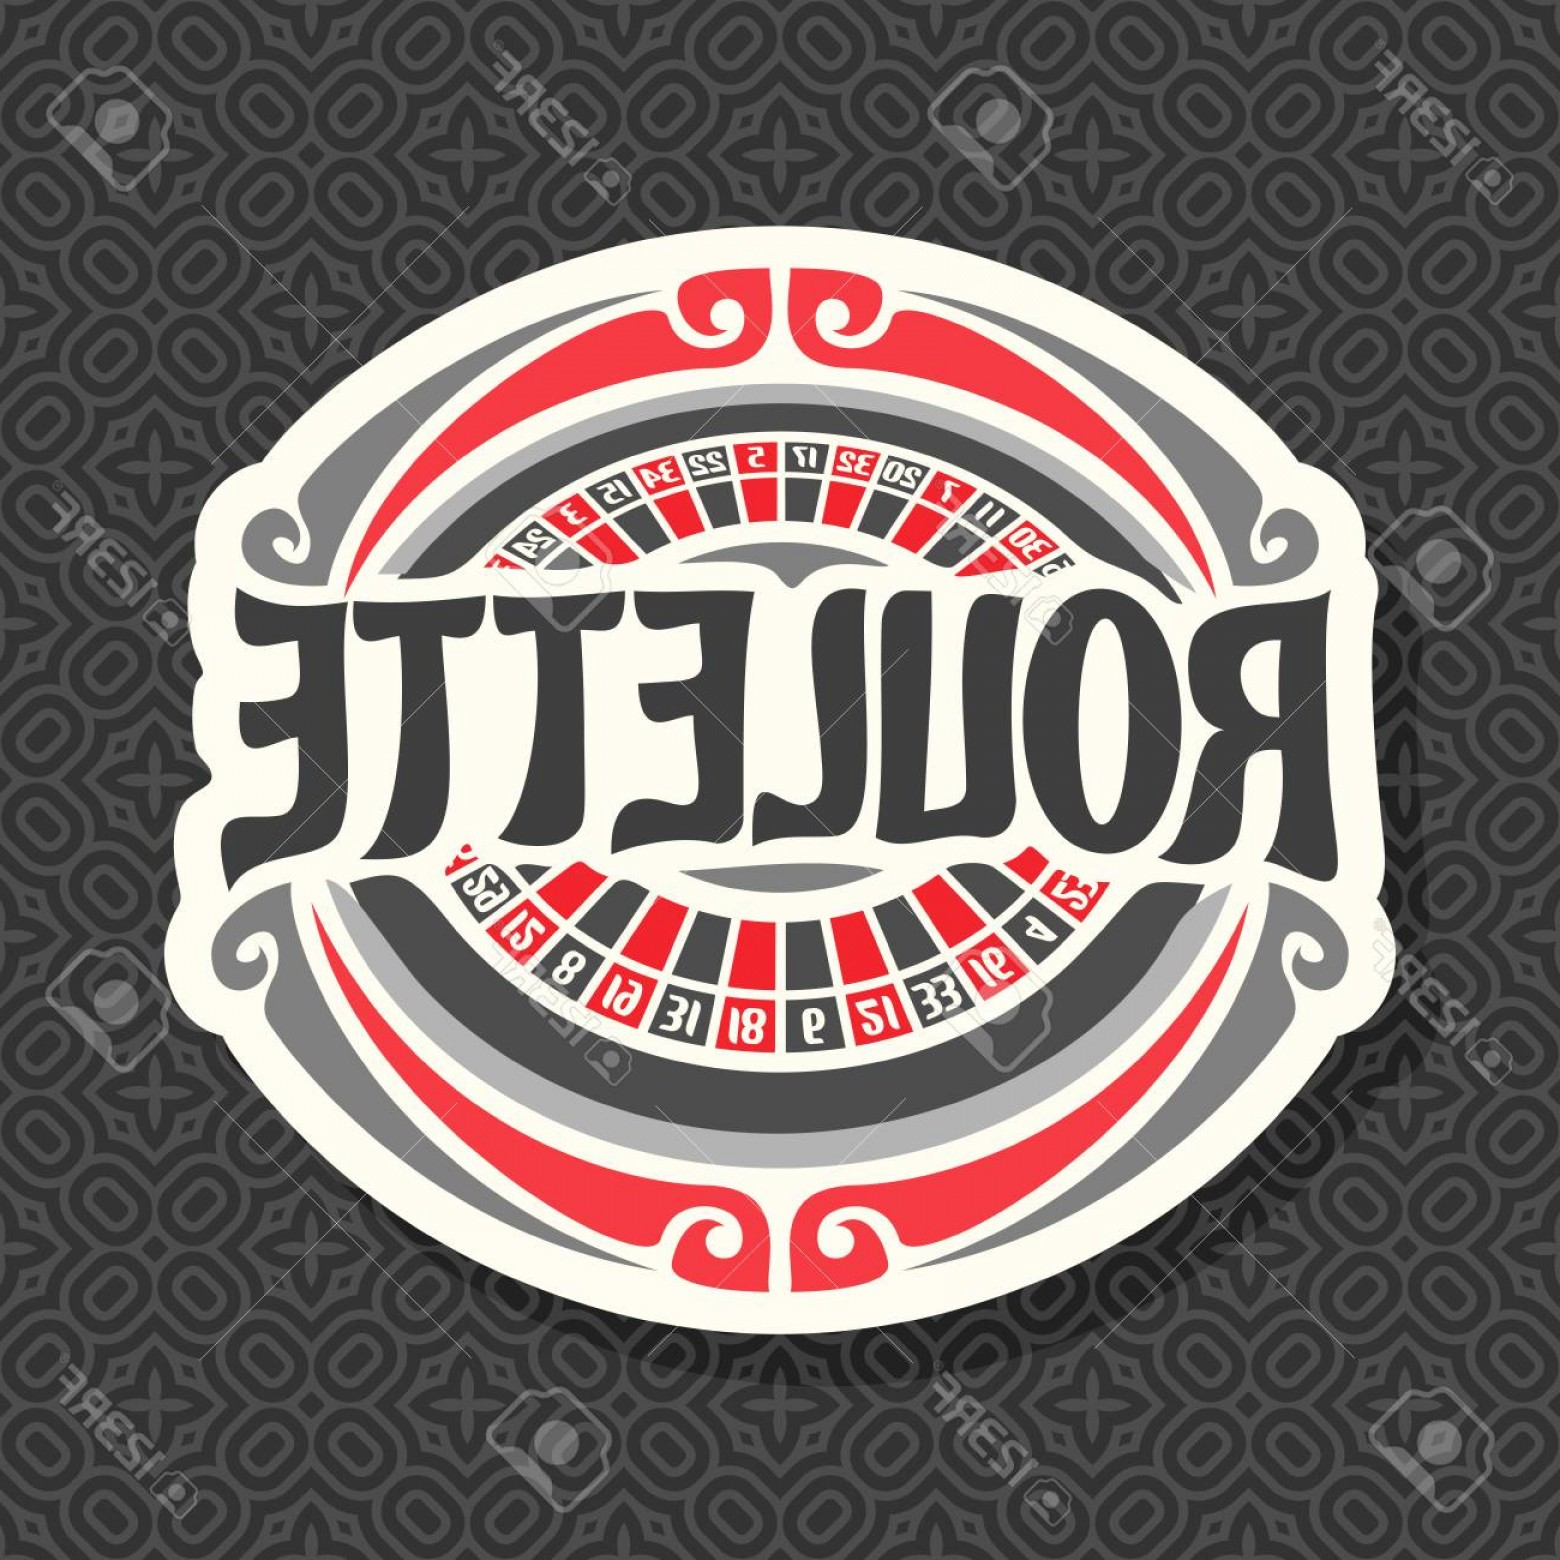 Title Red And Gray Vector: Photostock Vector Vector Logo For Roulette Gamble Red And Black Numbers Vintage Font Of Lettering Title Text Roulette